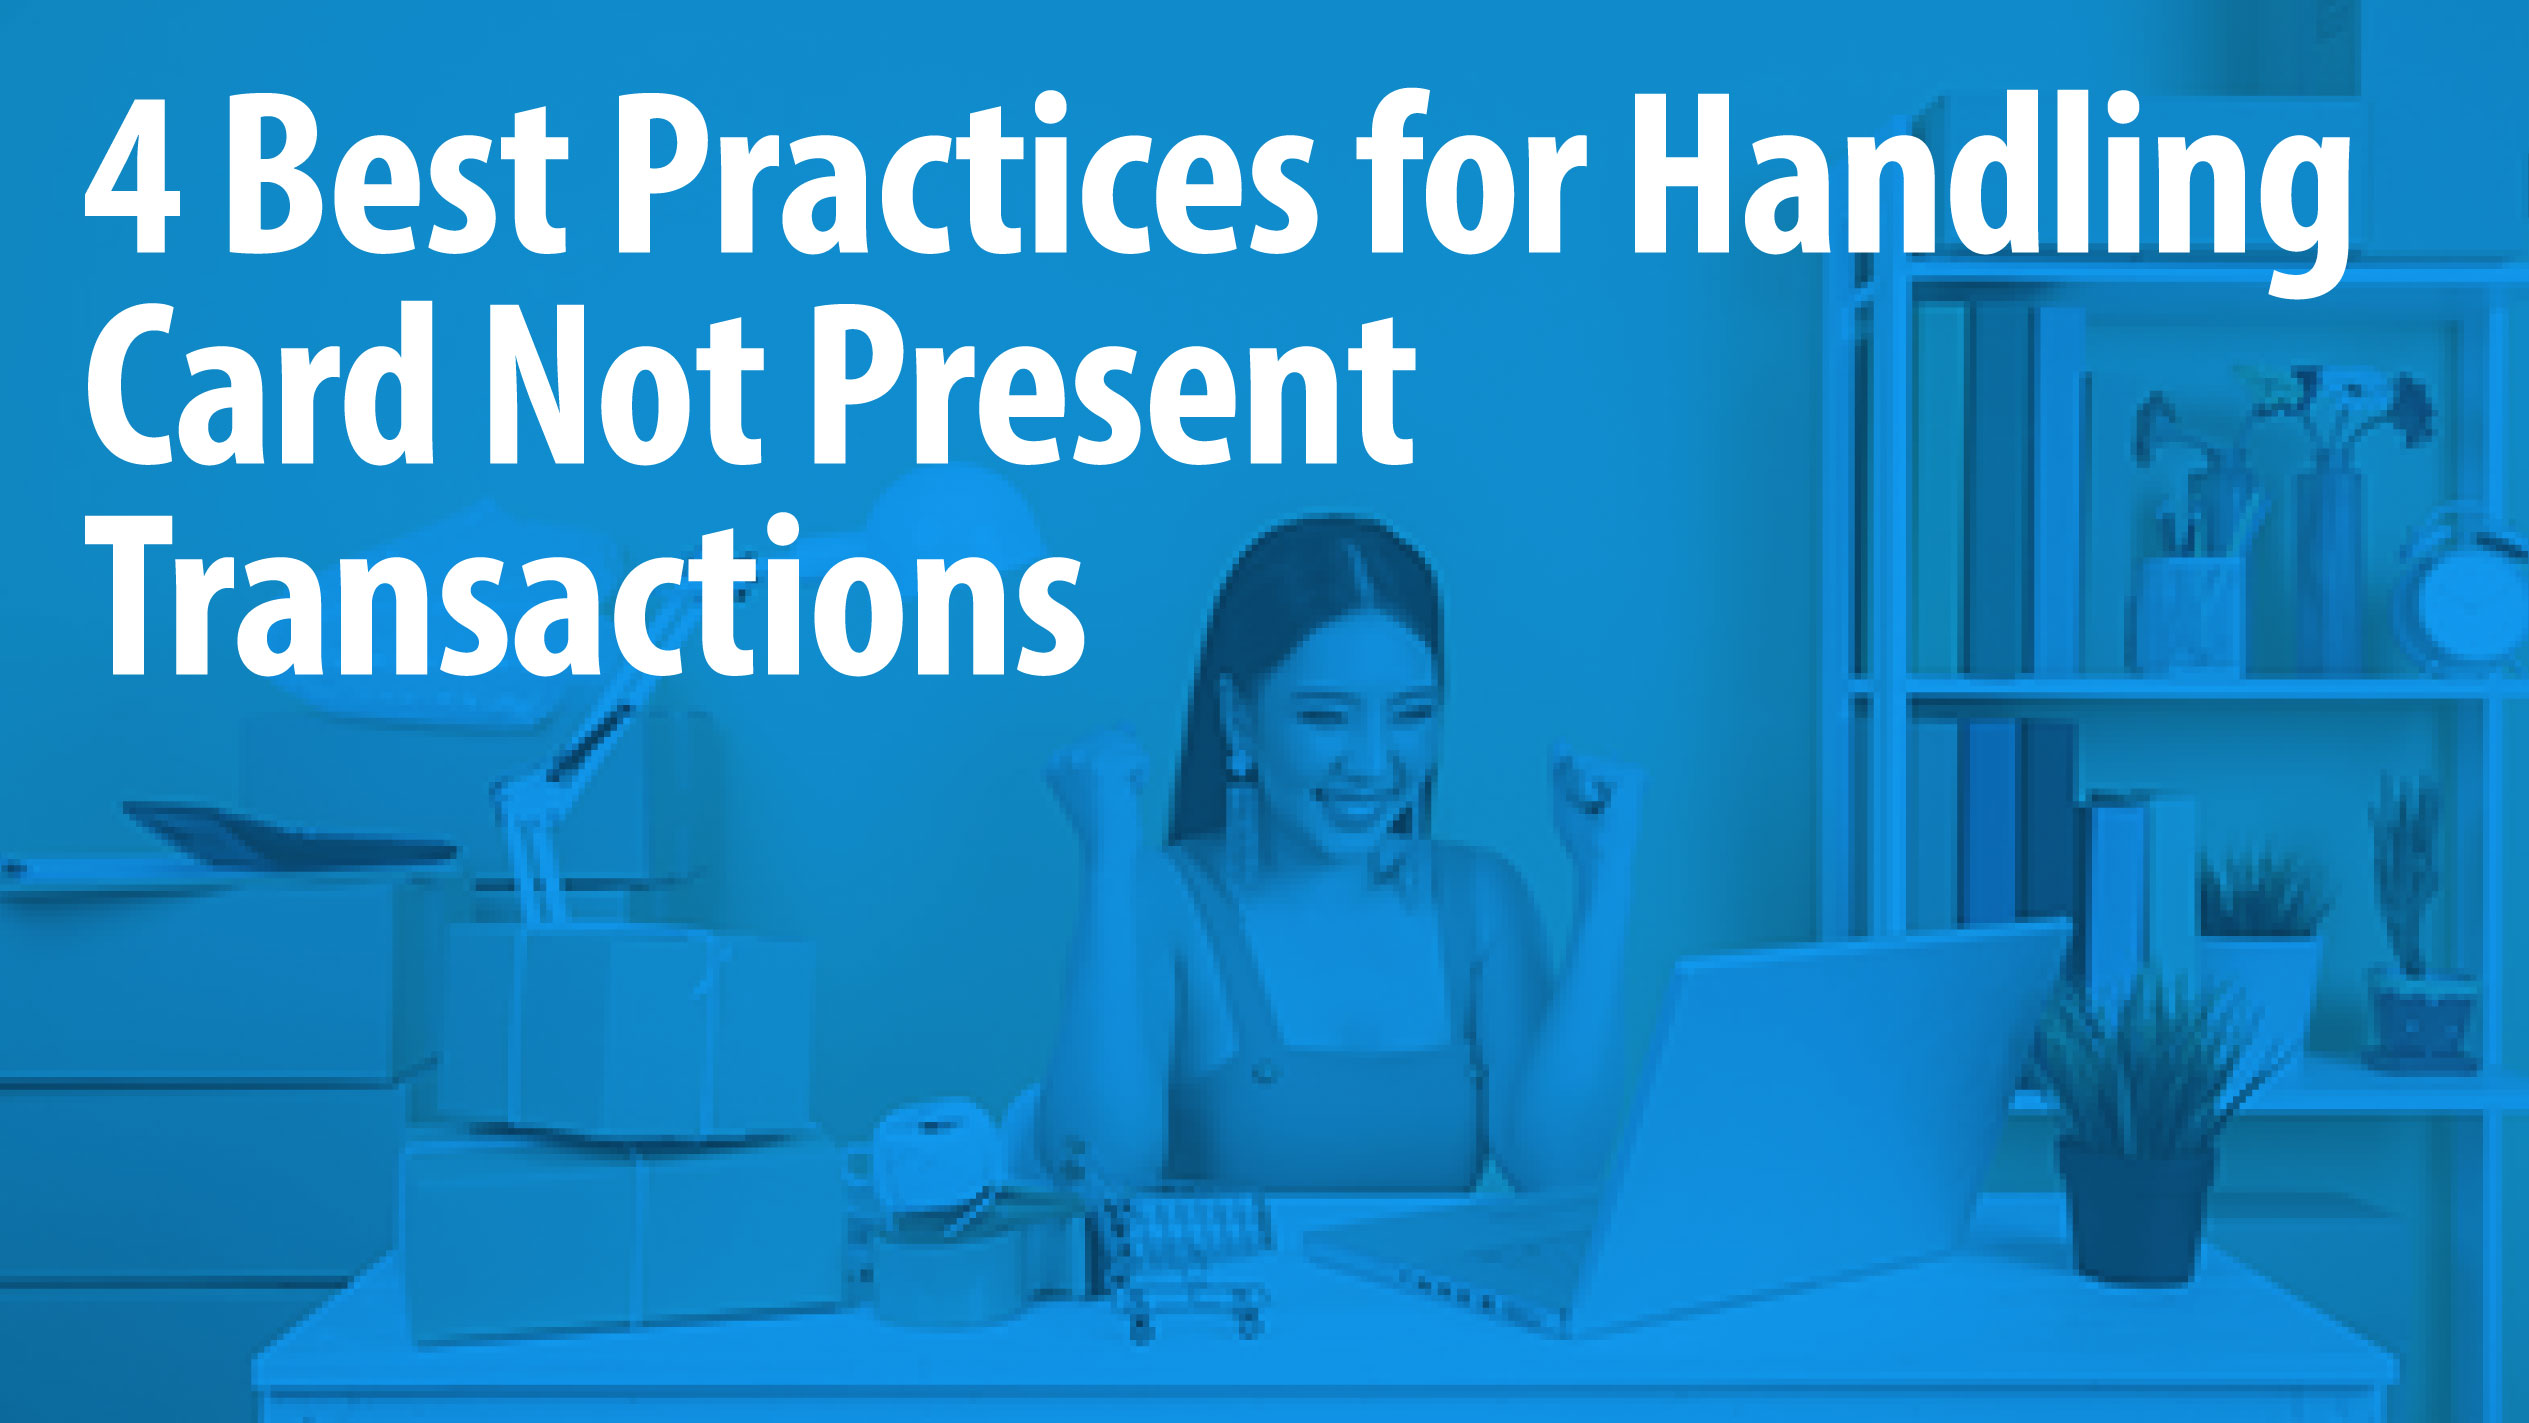 4 Best Practices for Handling Card Not Present Transactions